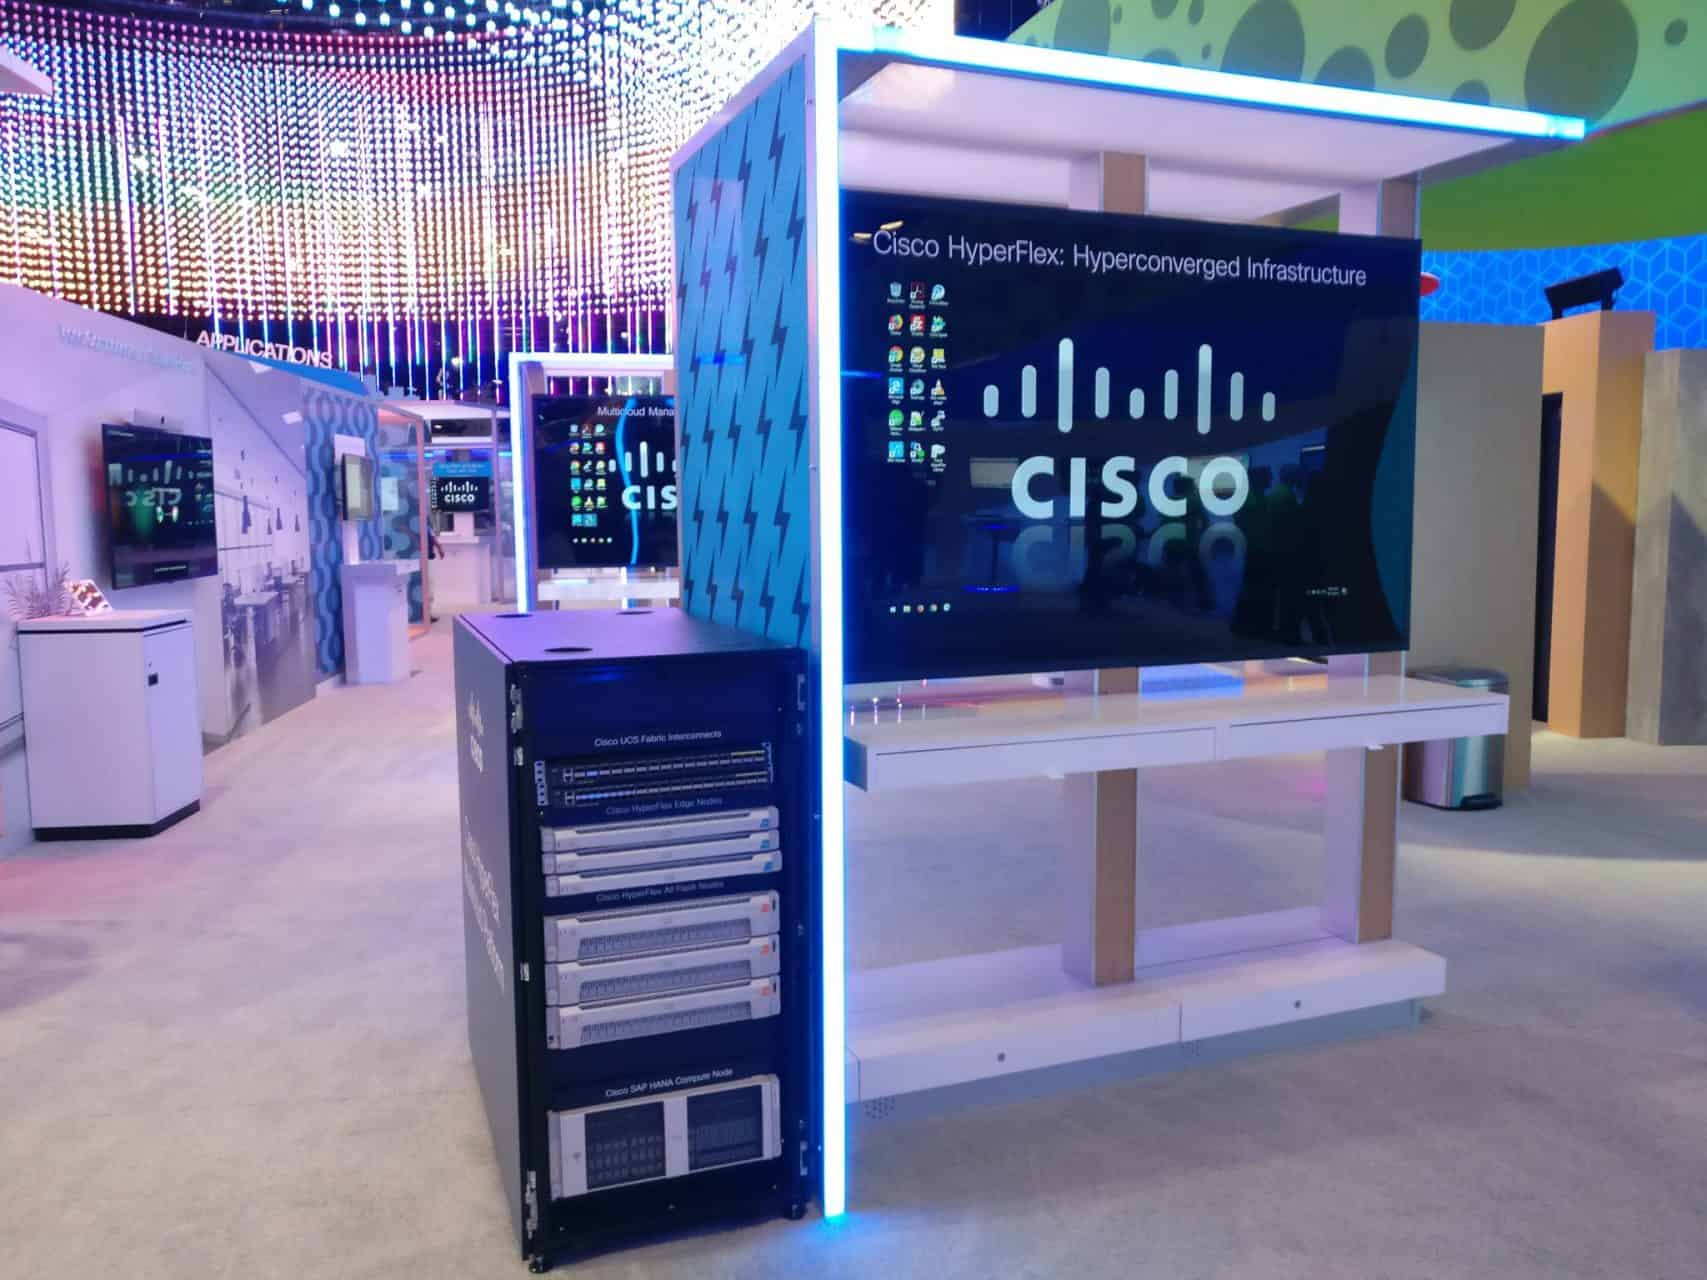 Cisco HyperFlex Booth at WoS